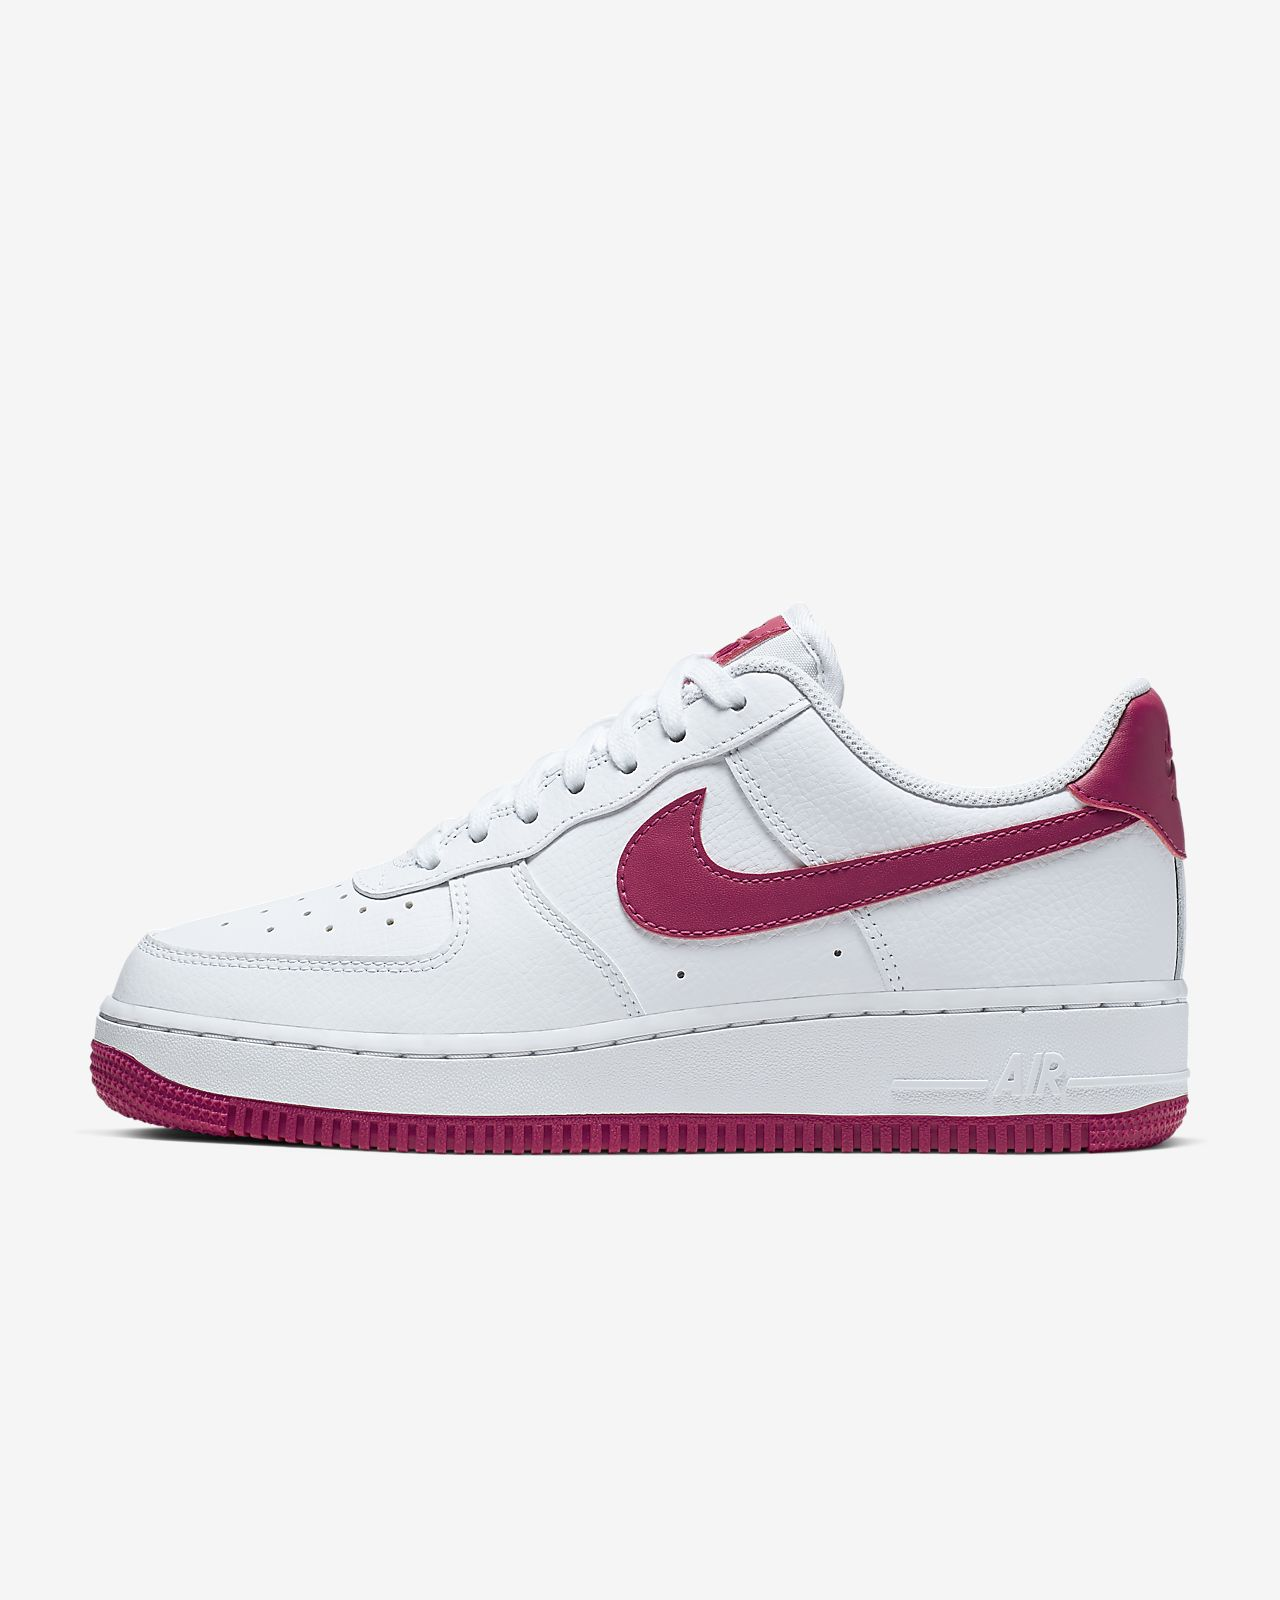 chaussure nike air force one femme 1'07